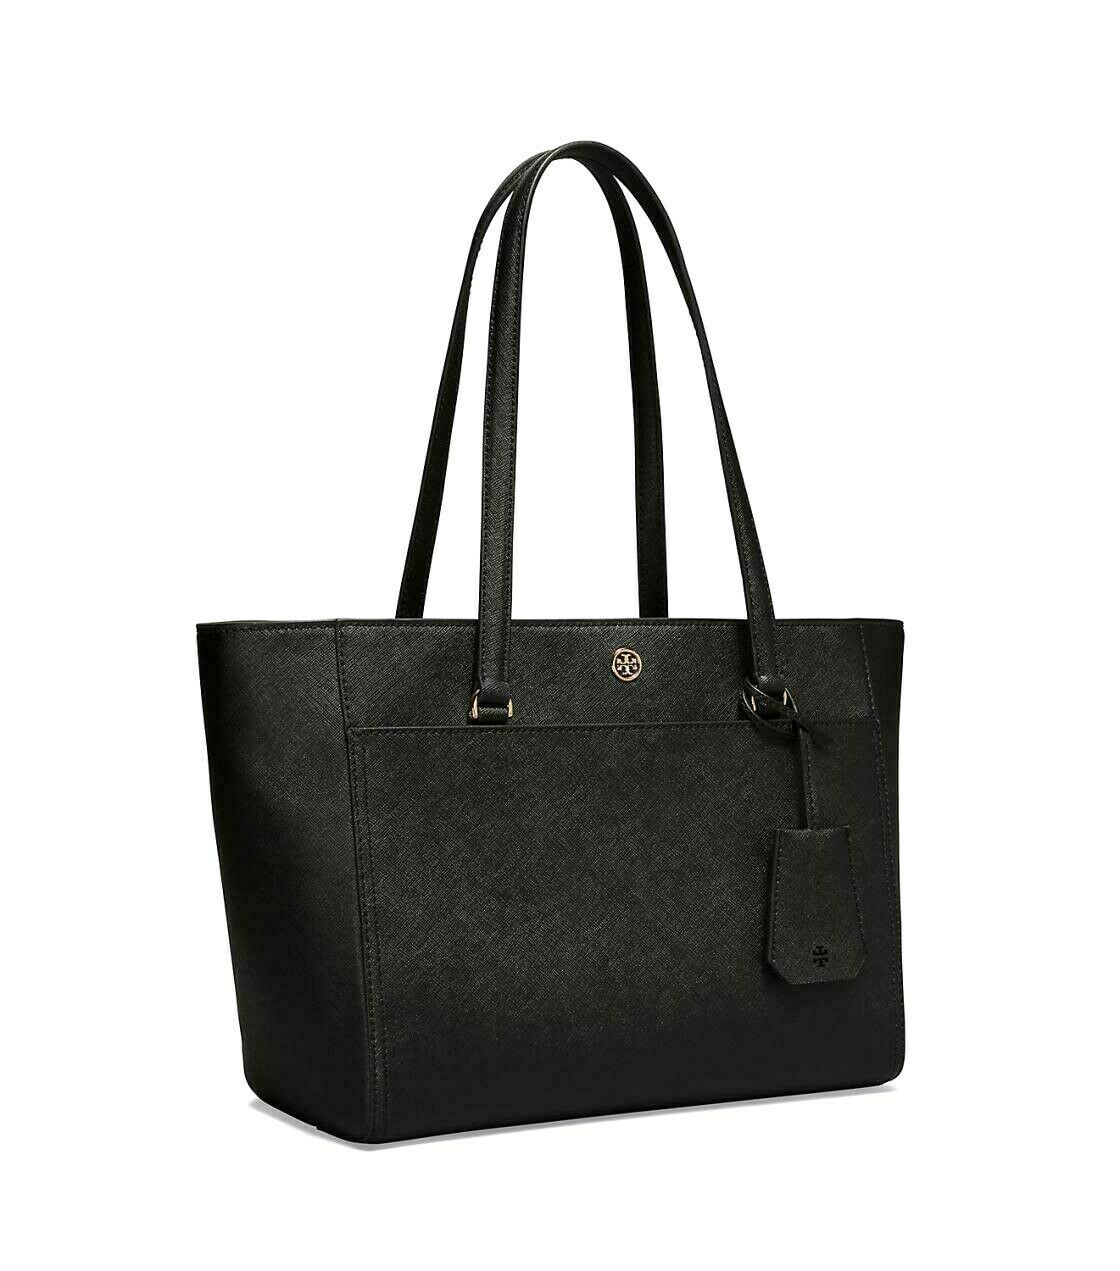 Tory Burch Robinson Small 3 Chamber Saffiano Leather Shoulder Pocket Tote New image 2